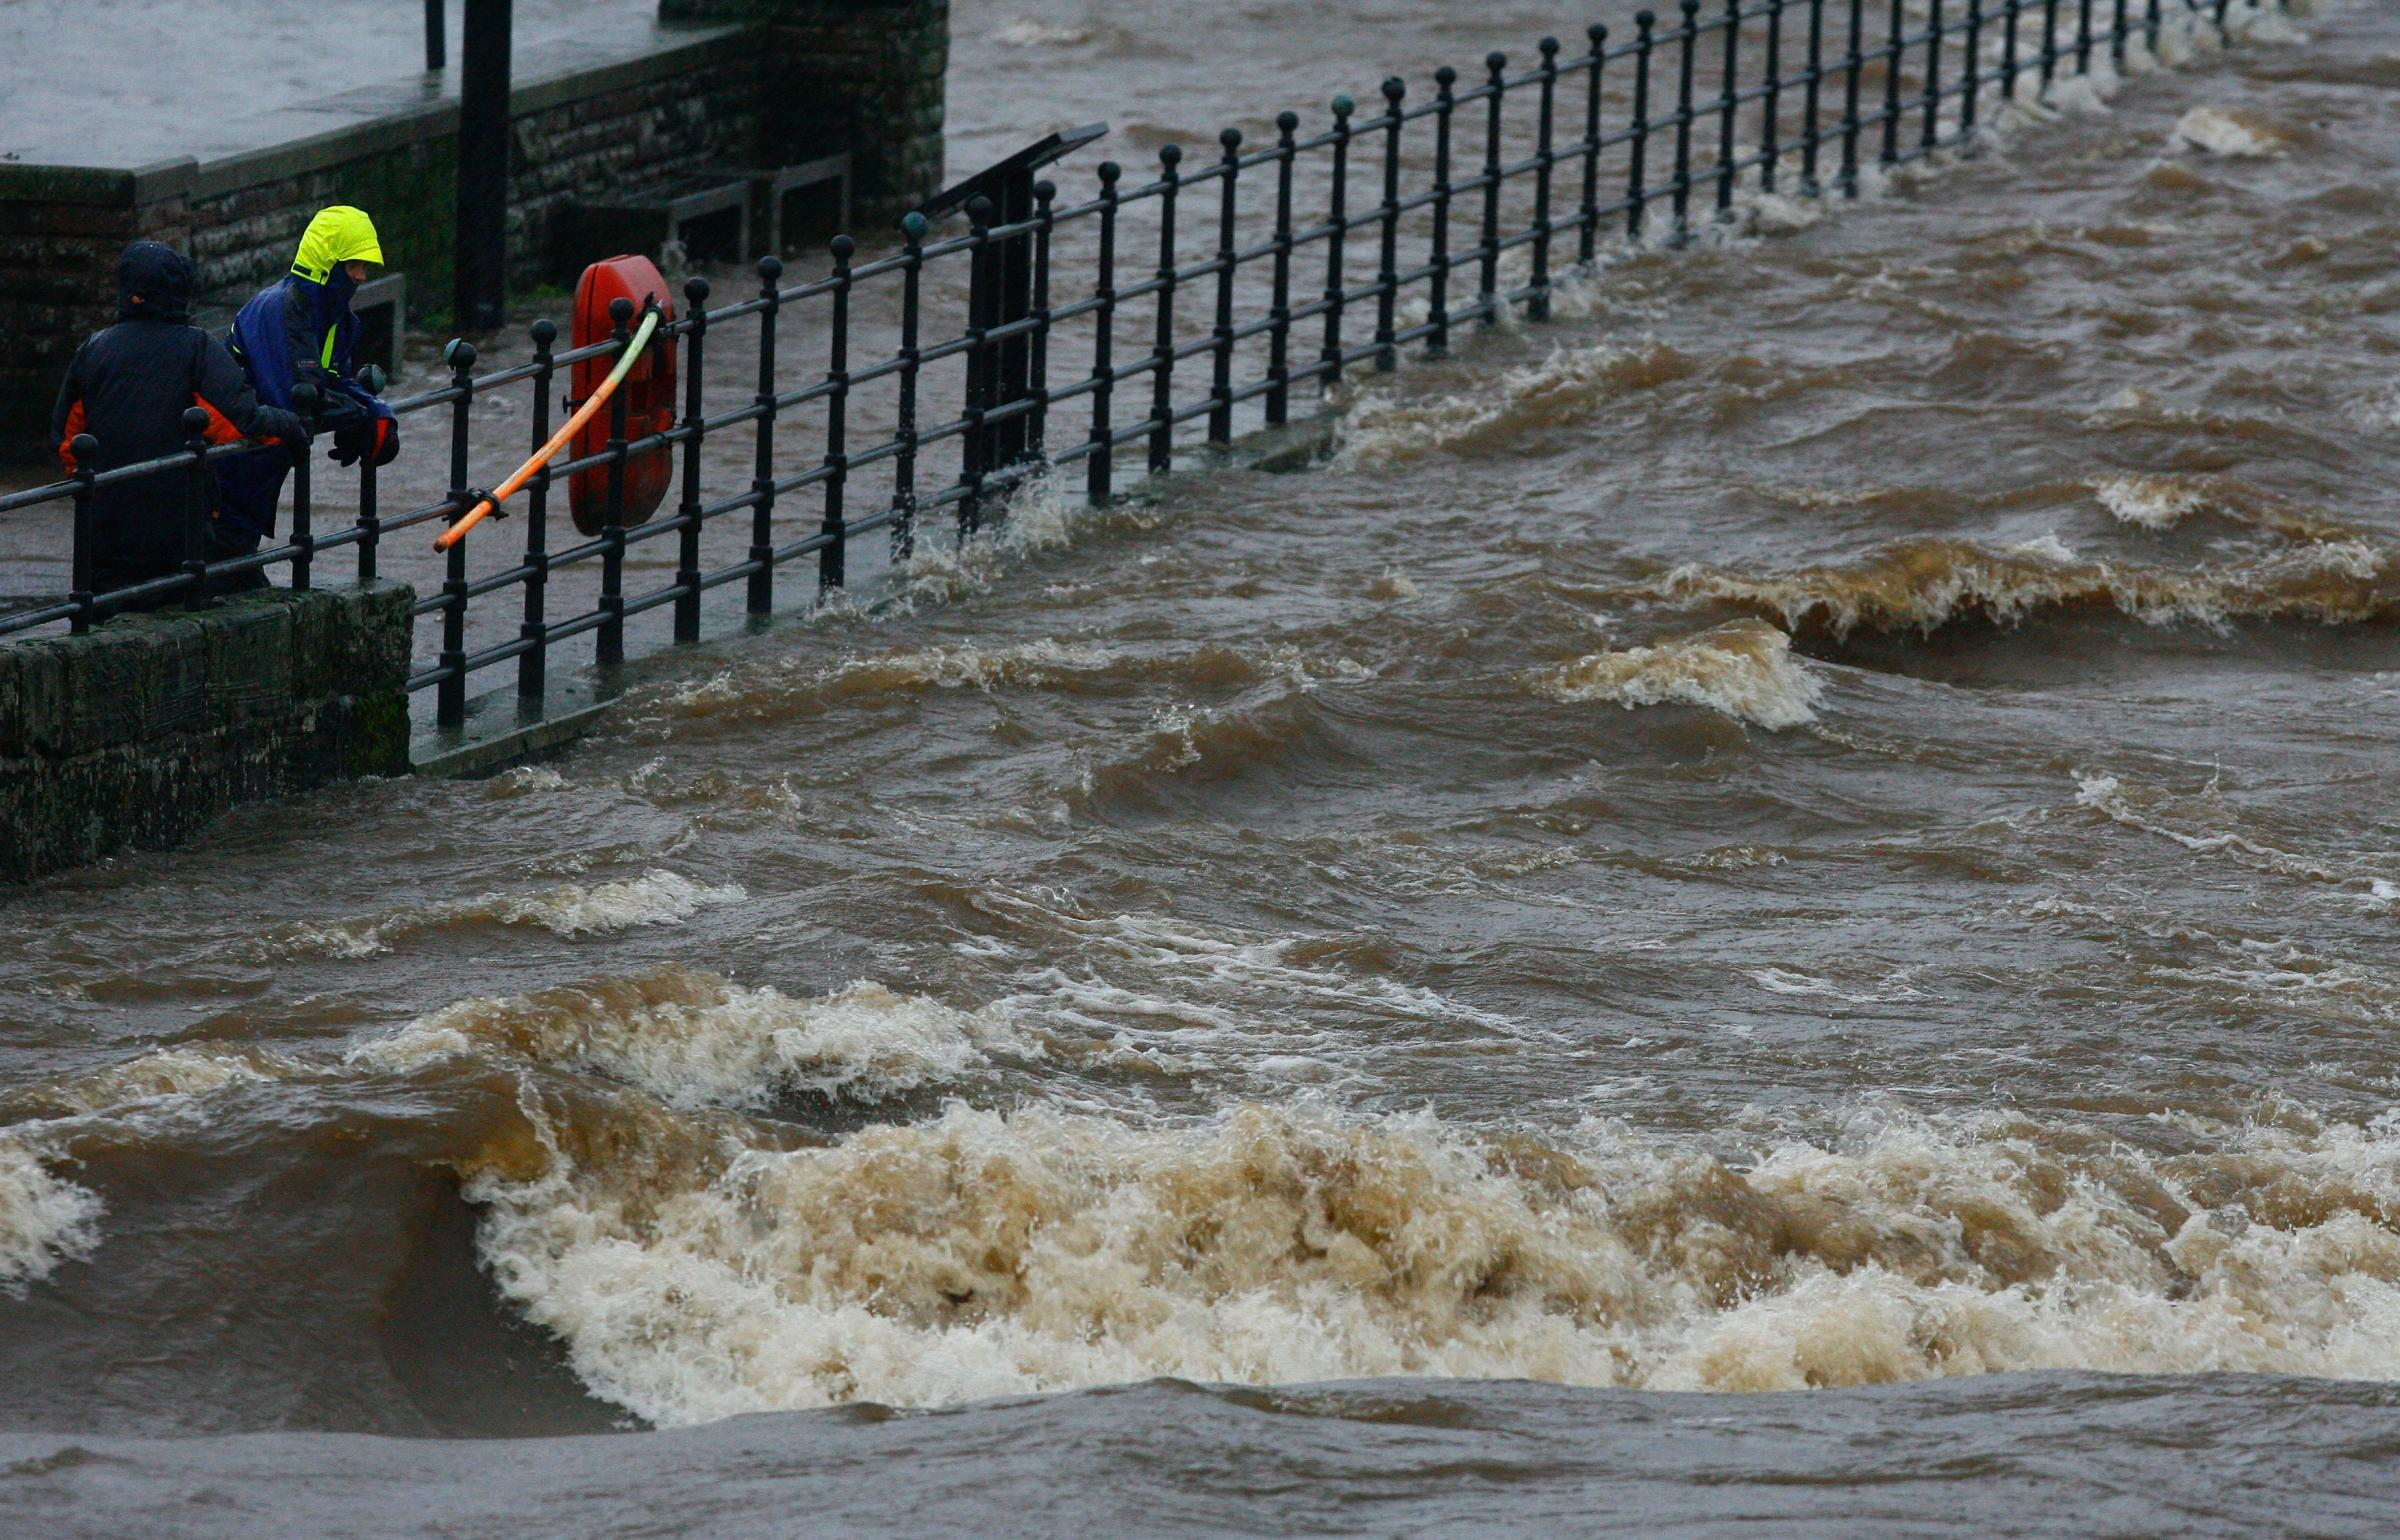 WATCH: Absolutely wild videos shared as major flooding hits Scotland